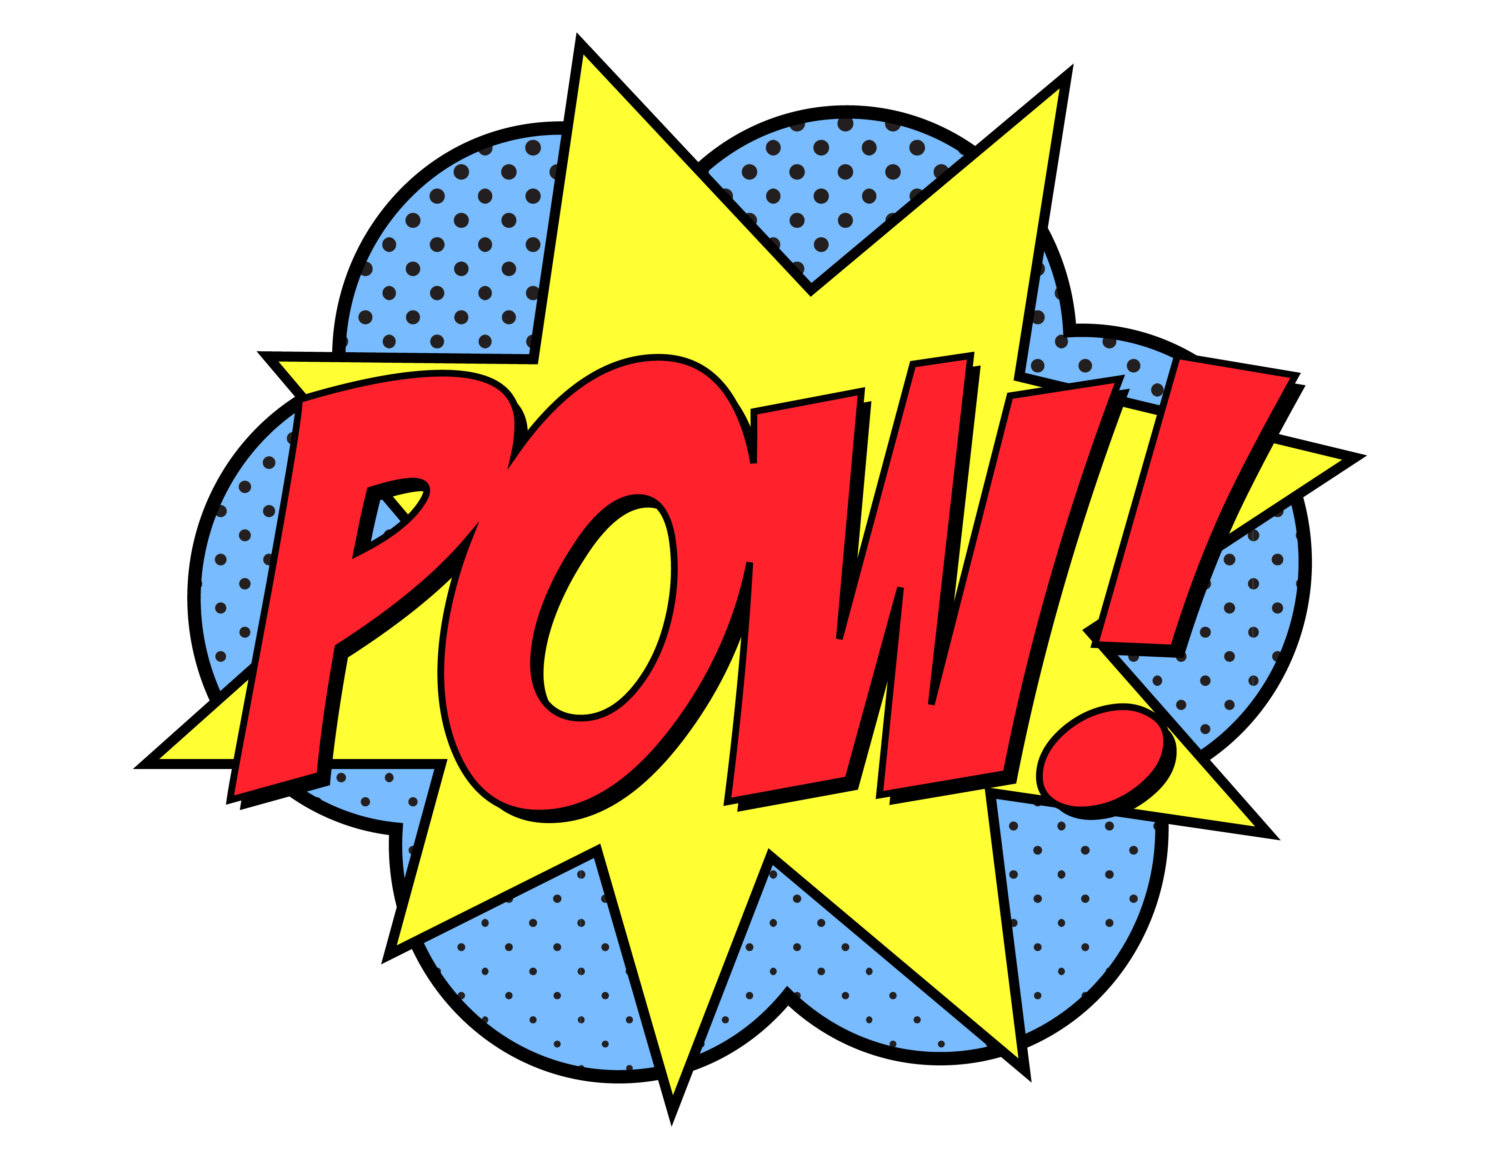 Boom clipart pow wow. Free download best on